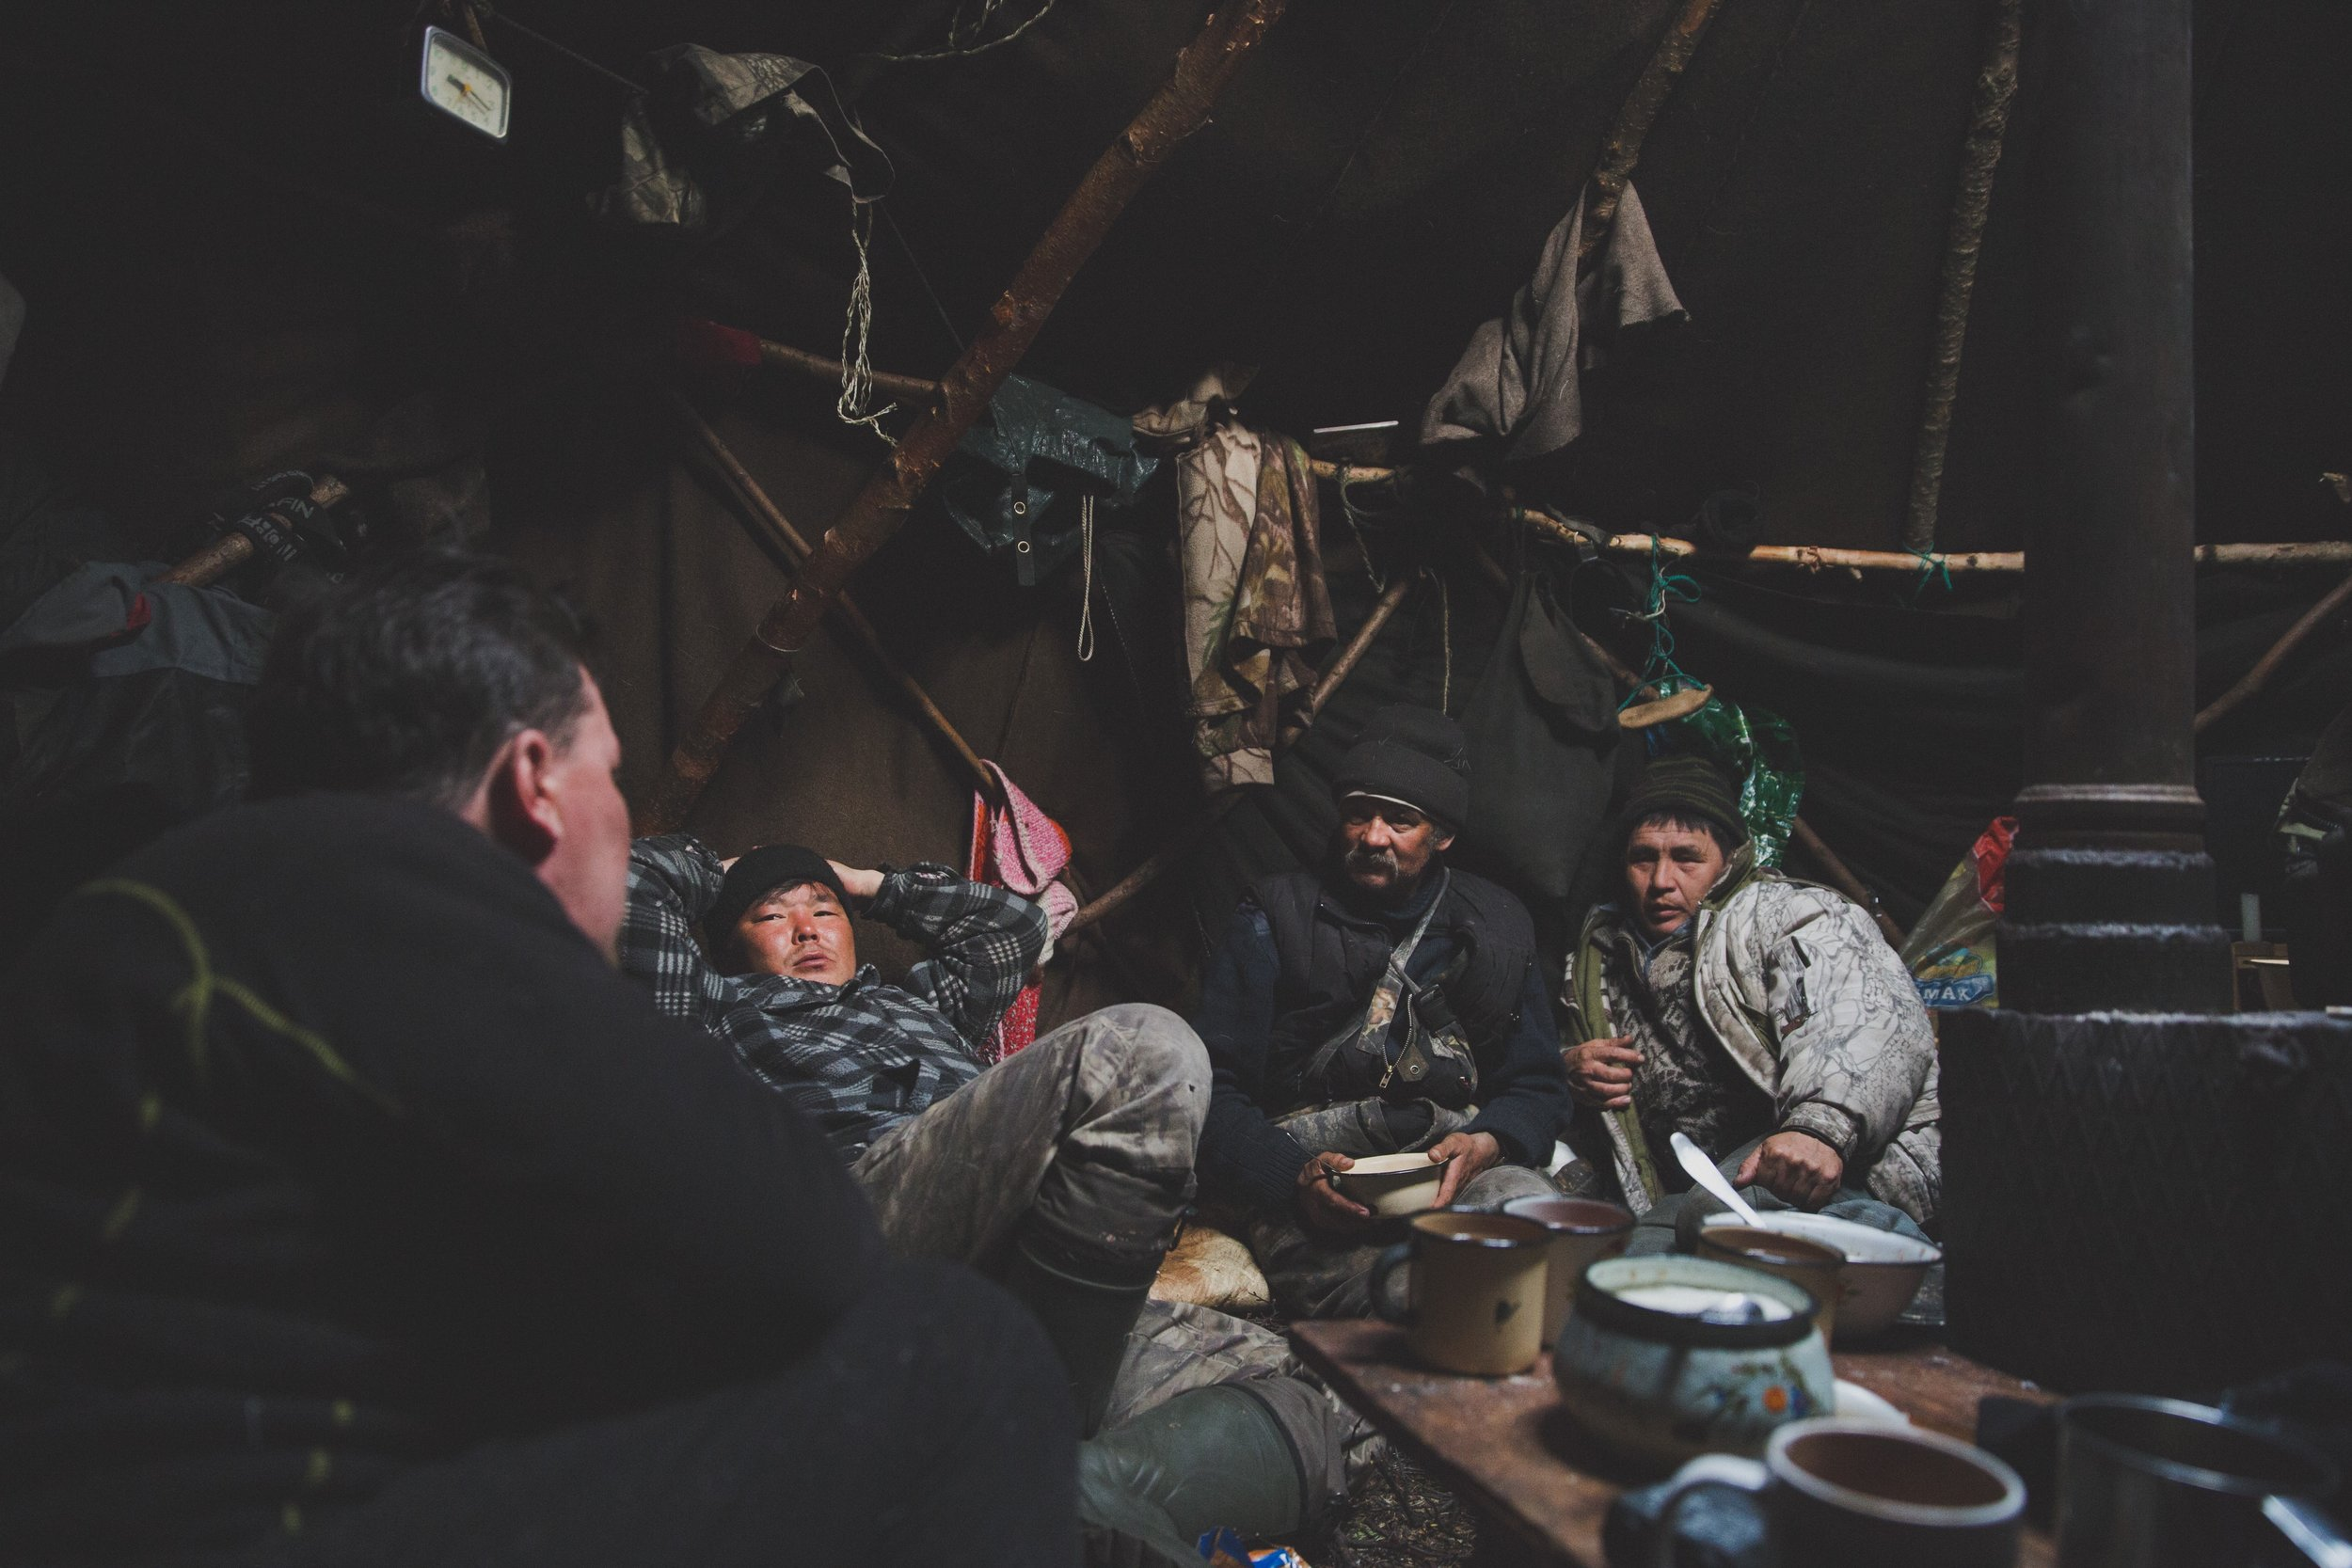 Reindeer herders along with some members from our Russian team relax in the winter yurt.